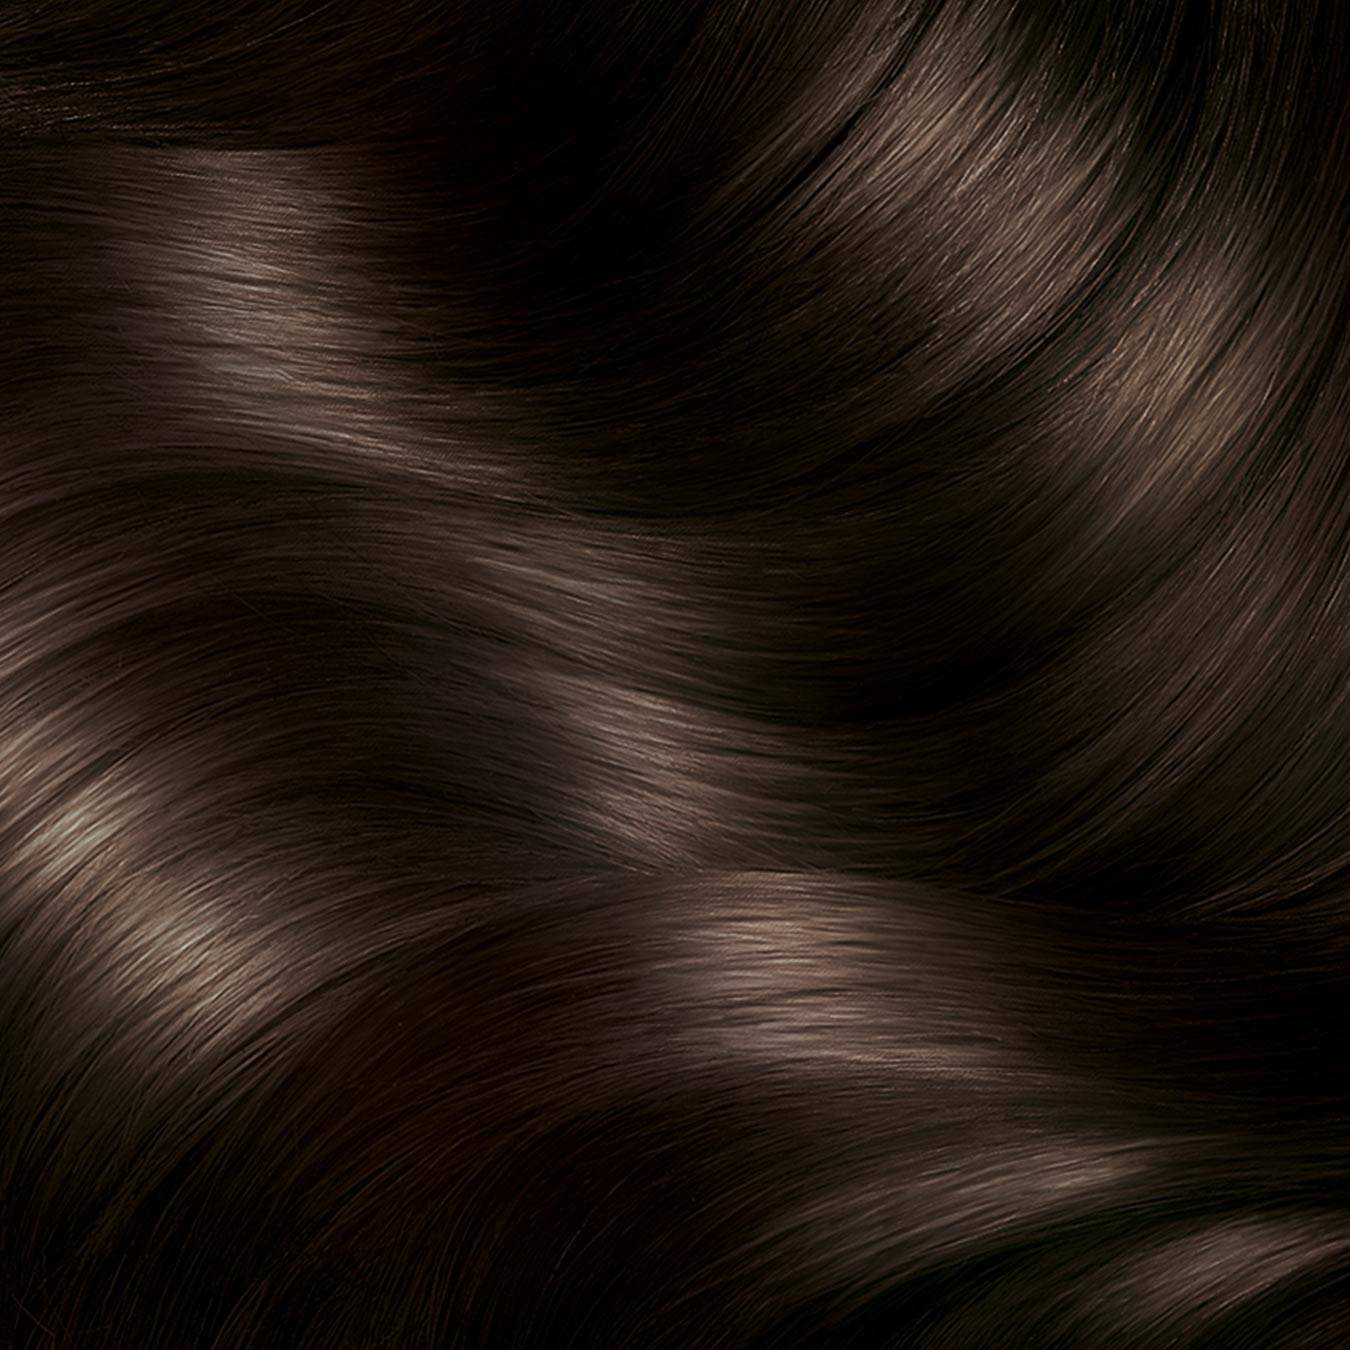 Hair Swatch of Express Retouch Dark Brown.